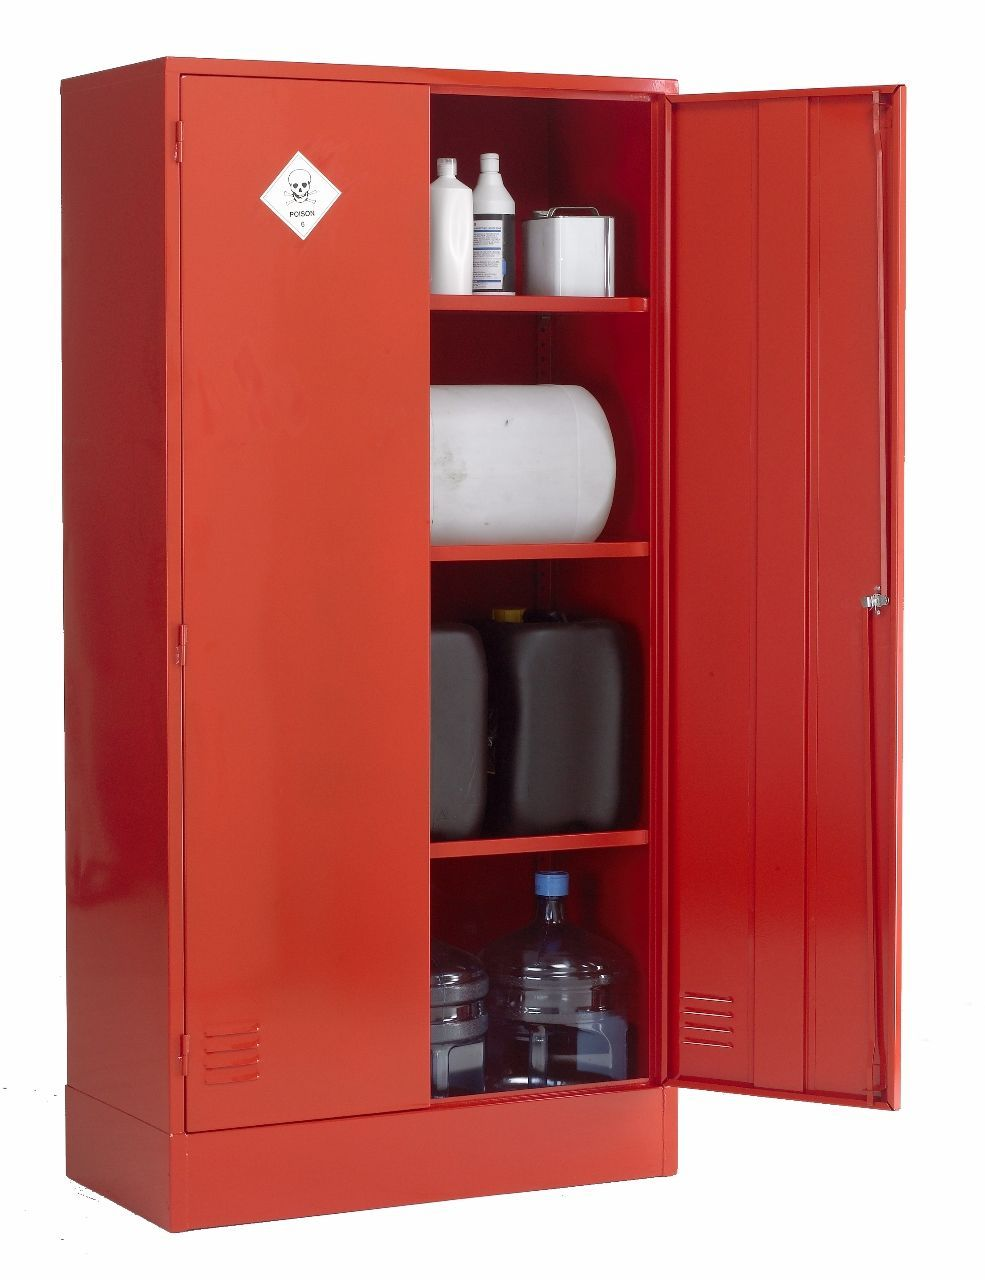 Pesticide & Agrochemical Cabinets